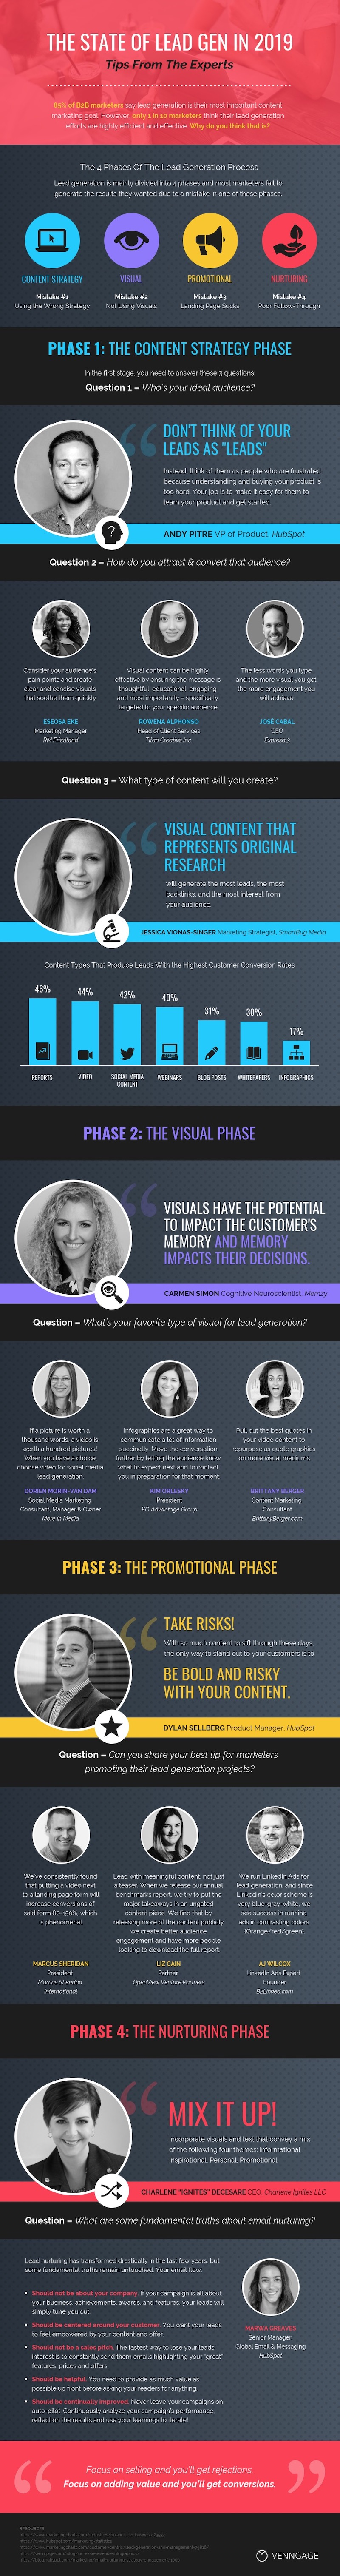 State of Lead Generation in 2019 Infographic